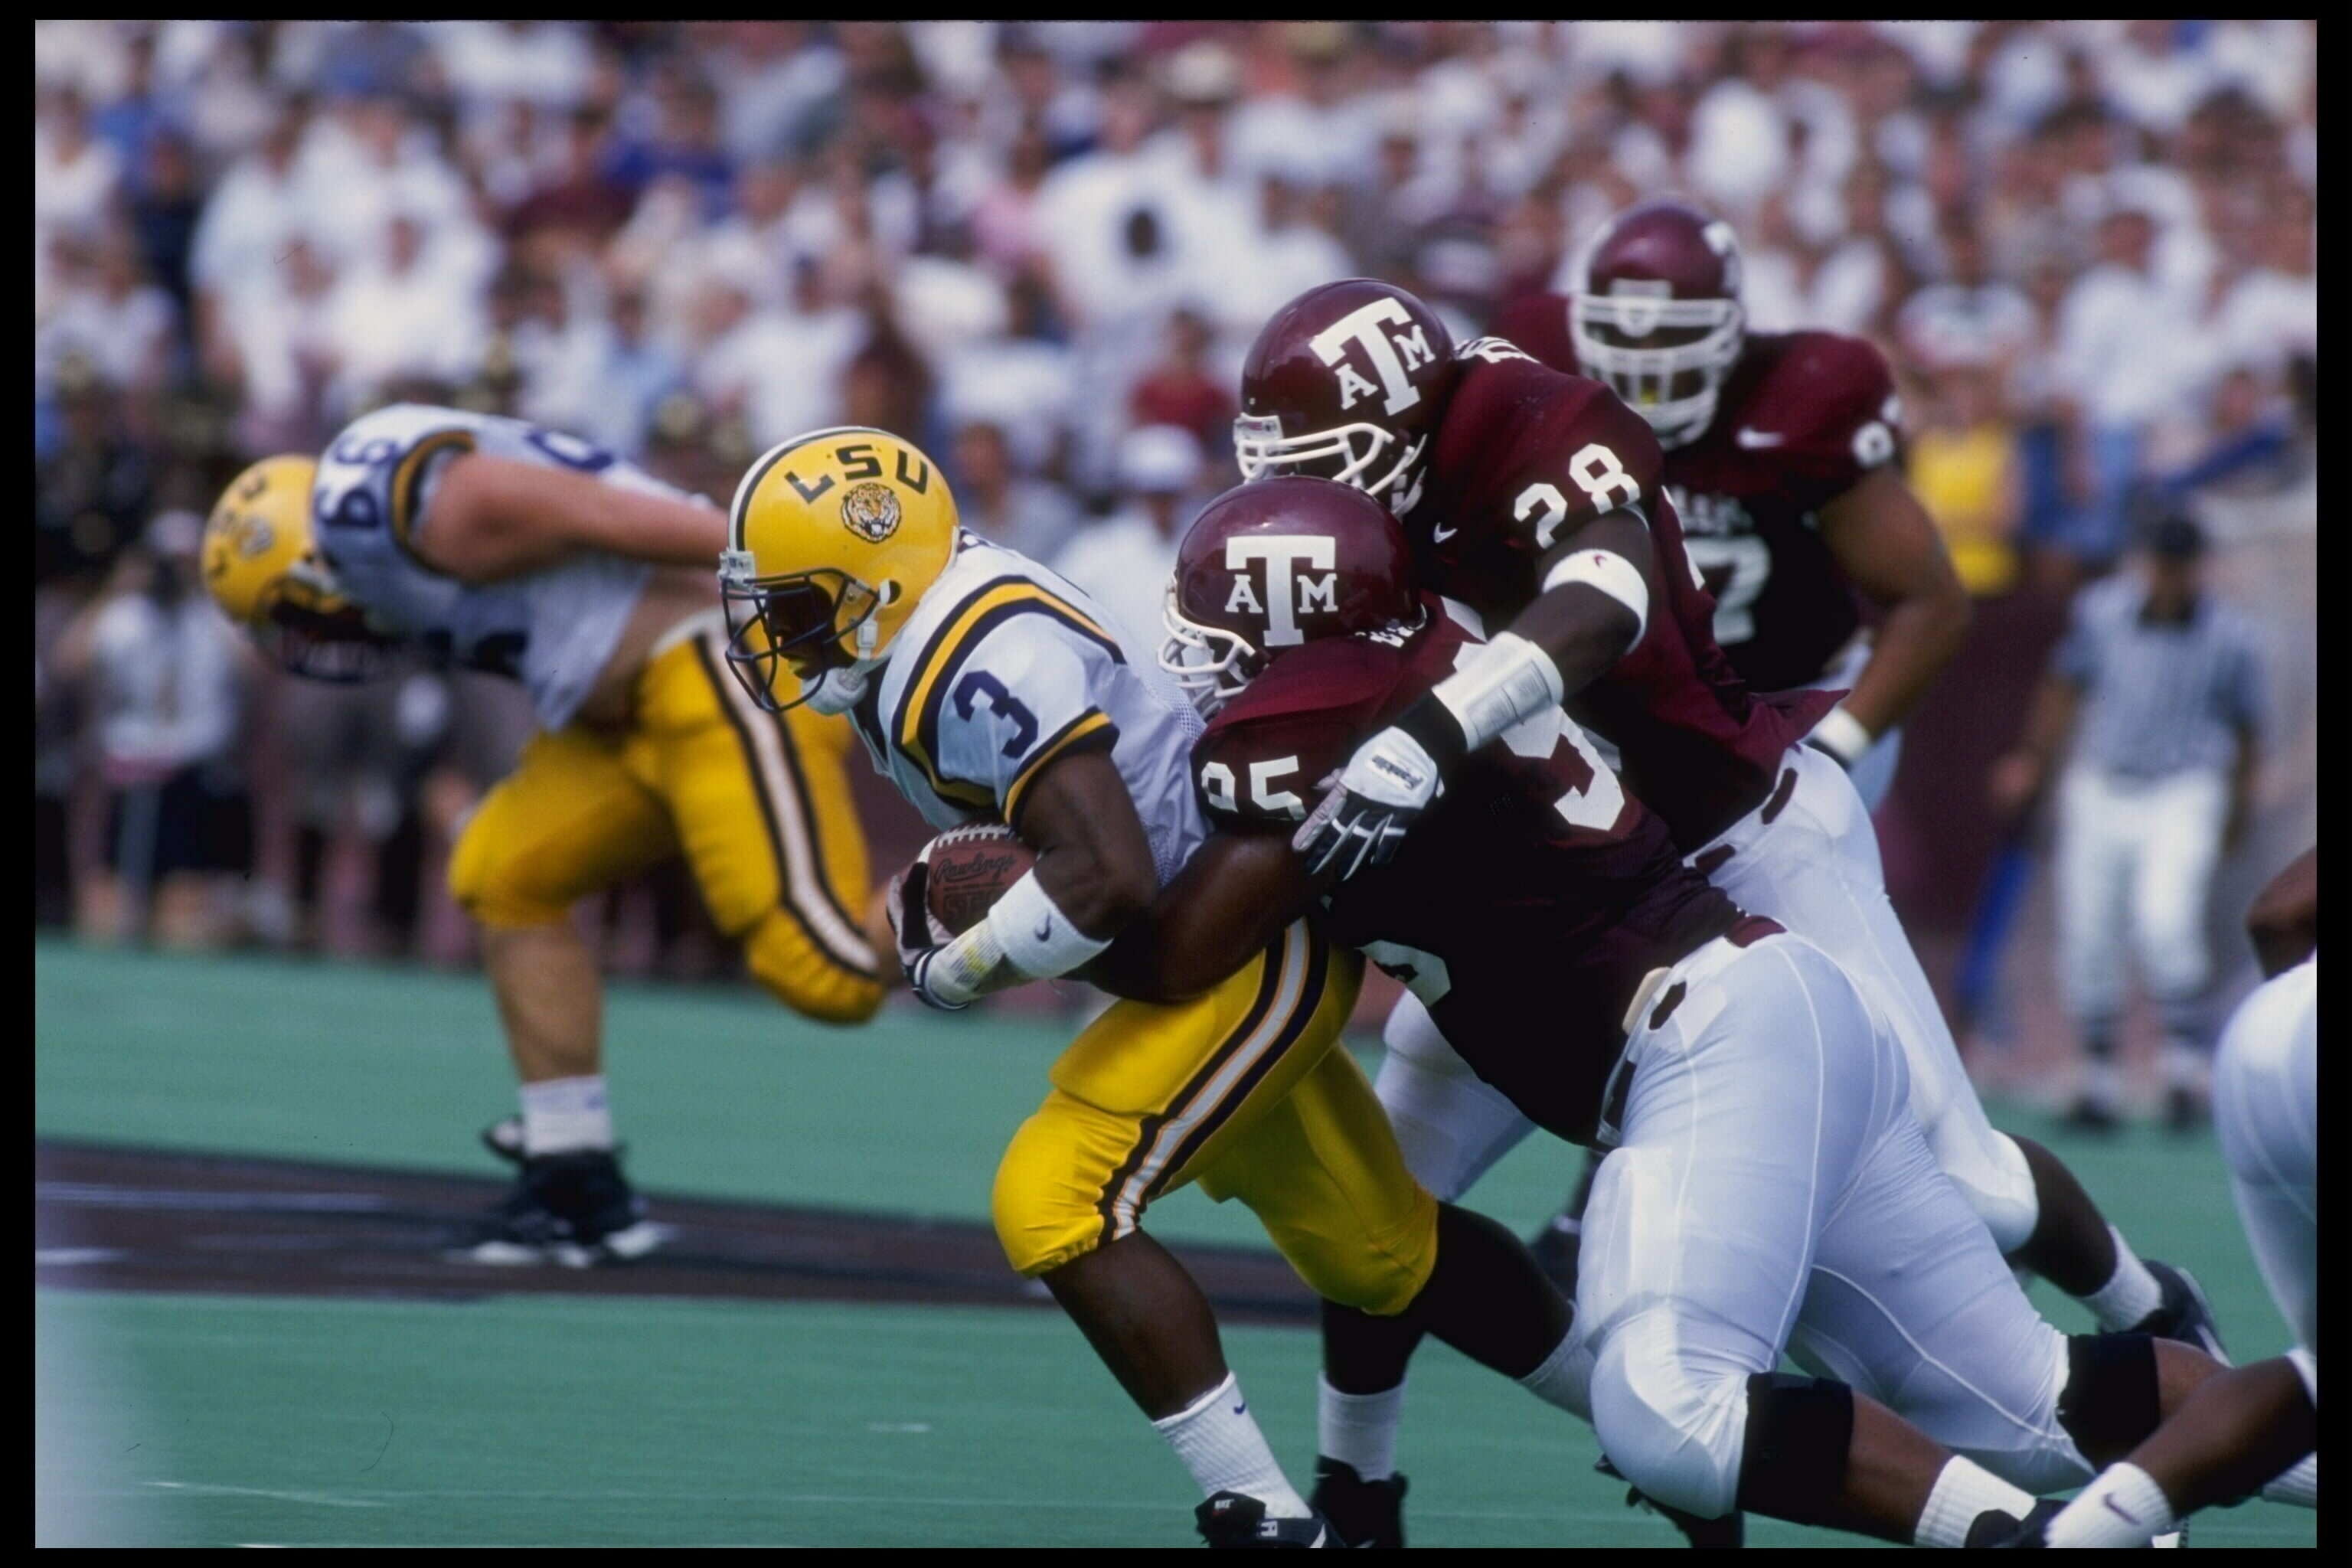 2 SEP 1995:  LSU RUNNING BACK KEVIN FAULK #3 IS TACKLED BY TEXAS A&M LINEBACKERS EDWARD JASPER #35 AND TRENT DRIVER #28 DURING LSU''S 33-17 LOSS AT KYLE FIELD IN COLLEGE STATION, TEXAS.  MANDATORY CREDIT:  ROBERT SEALE/ALLSPORT